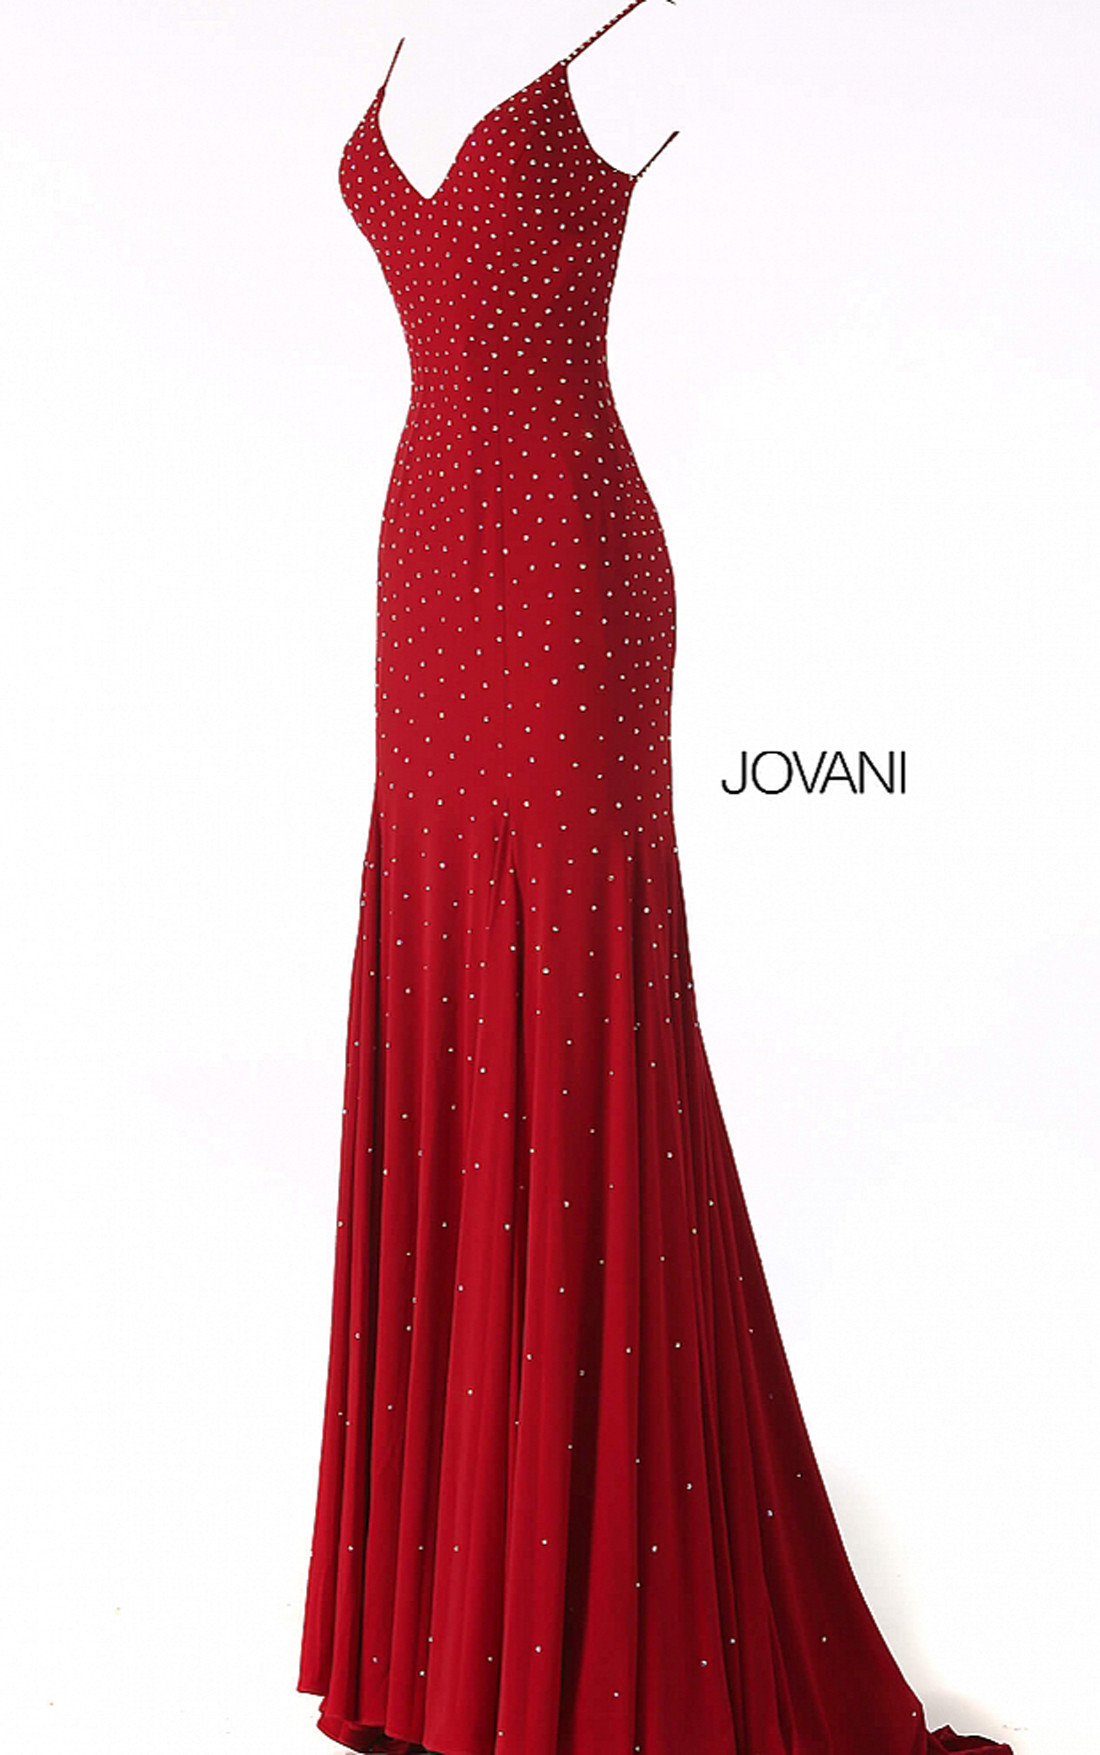 Jovani - Red Backless Embellished Jersey Dress (63563)